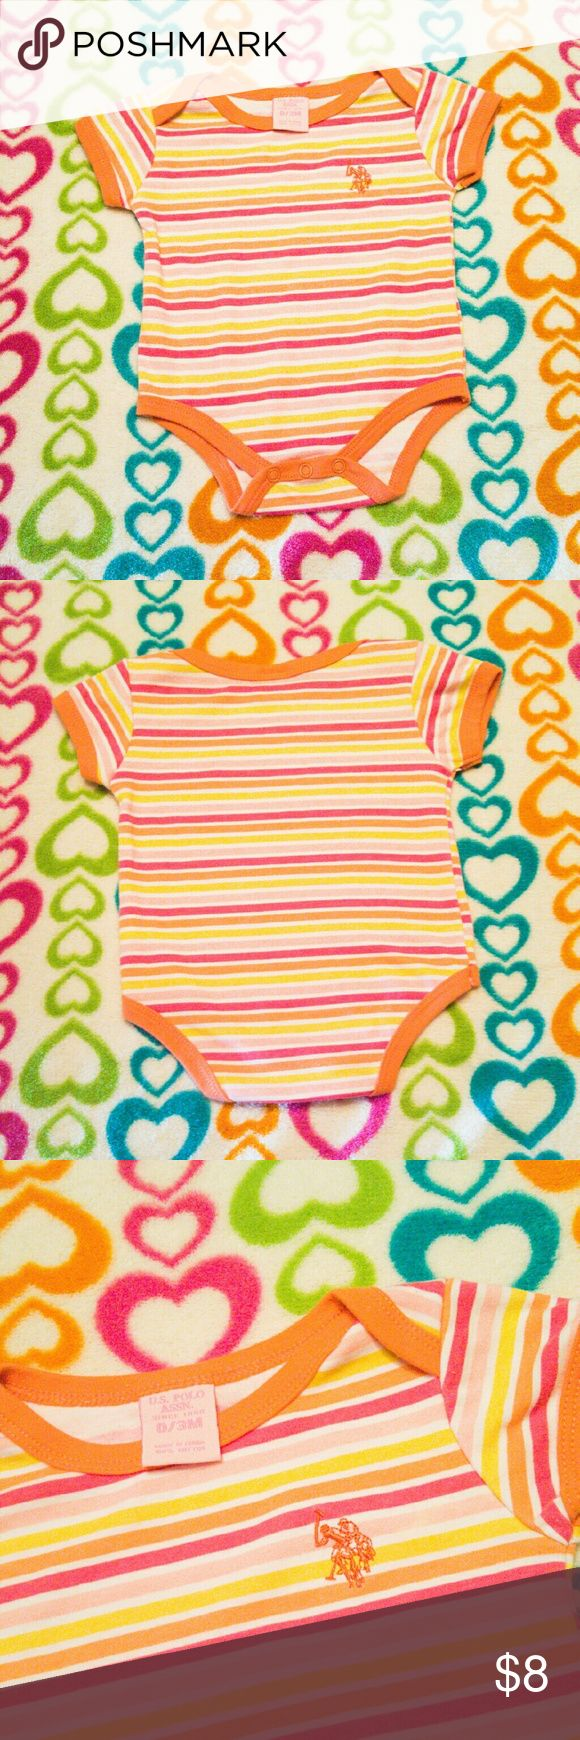 U.S. POLO ASSN. Baby Girl Onsie It is a U.S. POLO ASSN. Onsie with pink, yellow orange pinstripes with orange trim on the neckline, arm and leg cuffs. It is absolutely cute and has a pink Polo rider on the top right side! It is also in new-like condition! From shoulder to bottom is 13 inches! And is 100% cotton! U.S. Polo Assn. One Pieces Bodysuits